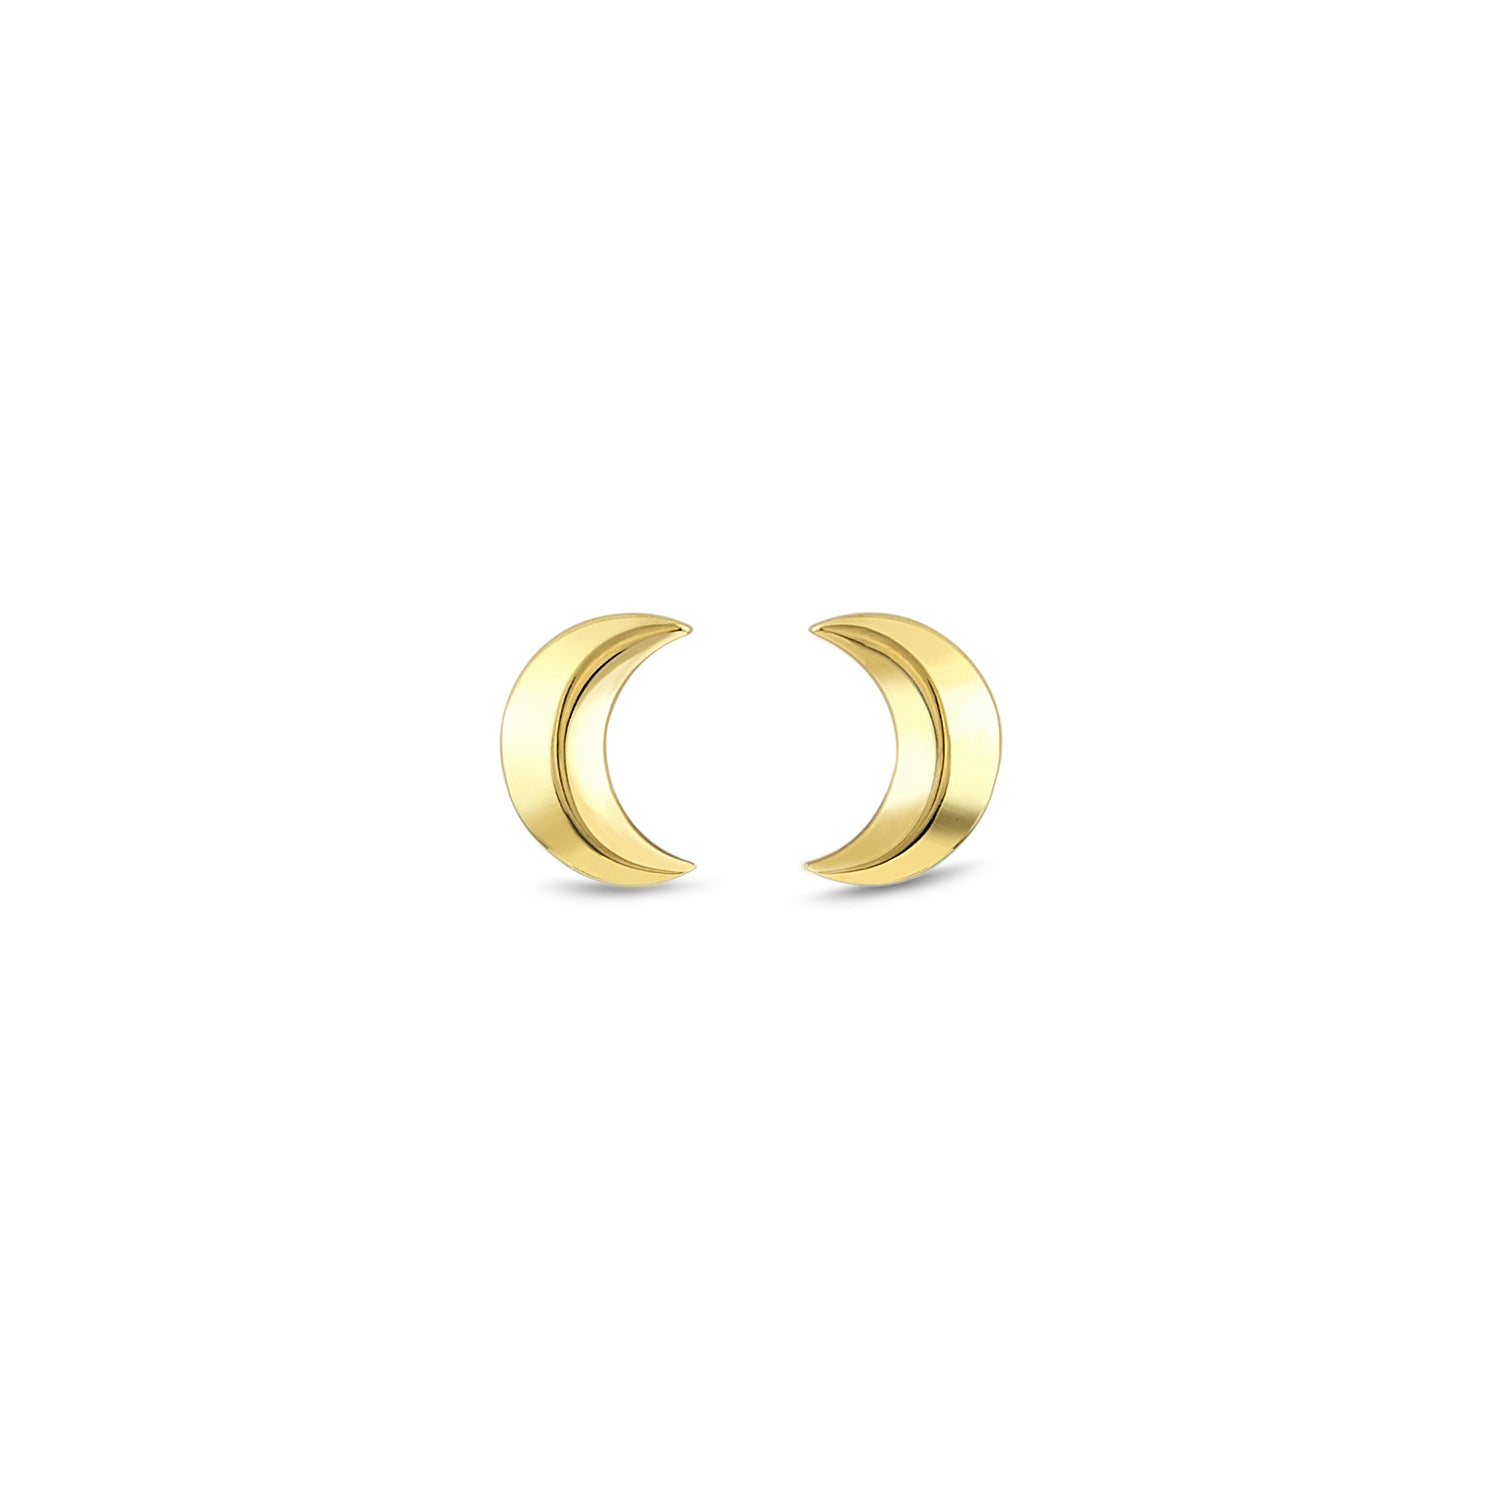 Gold Small Crescent Moon Studs, Jewelry - Katherine & Josephine